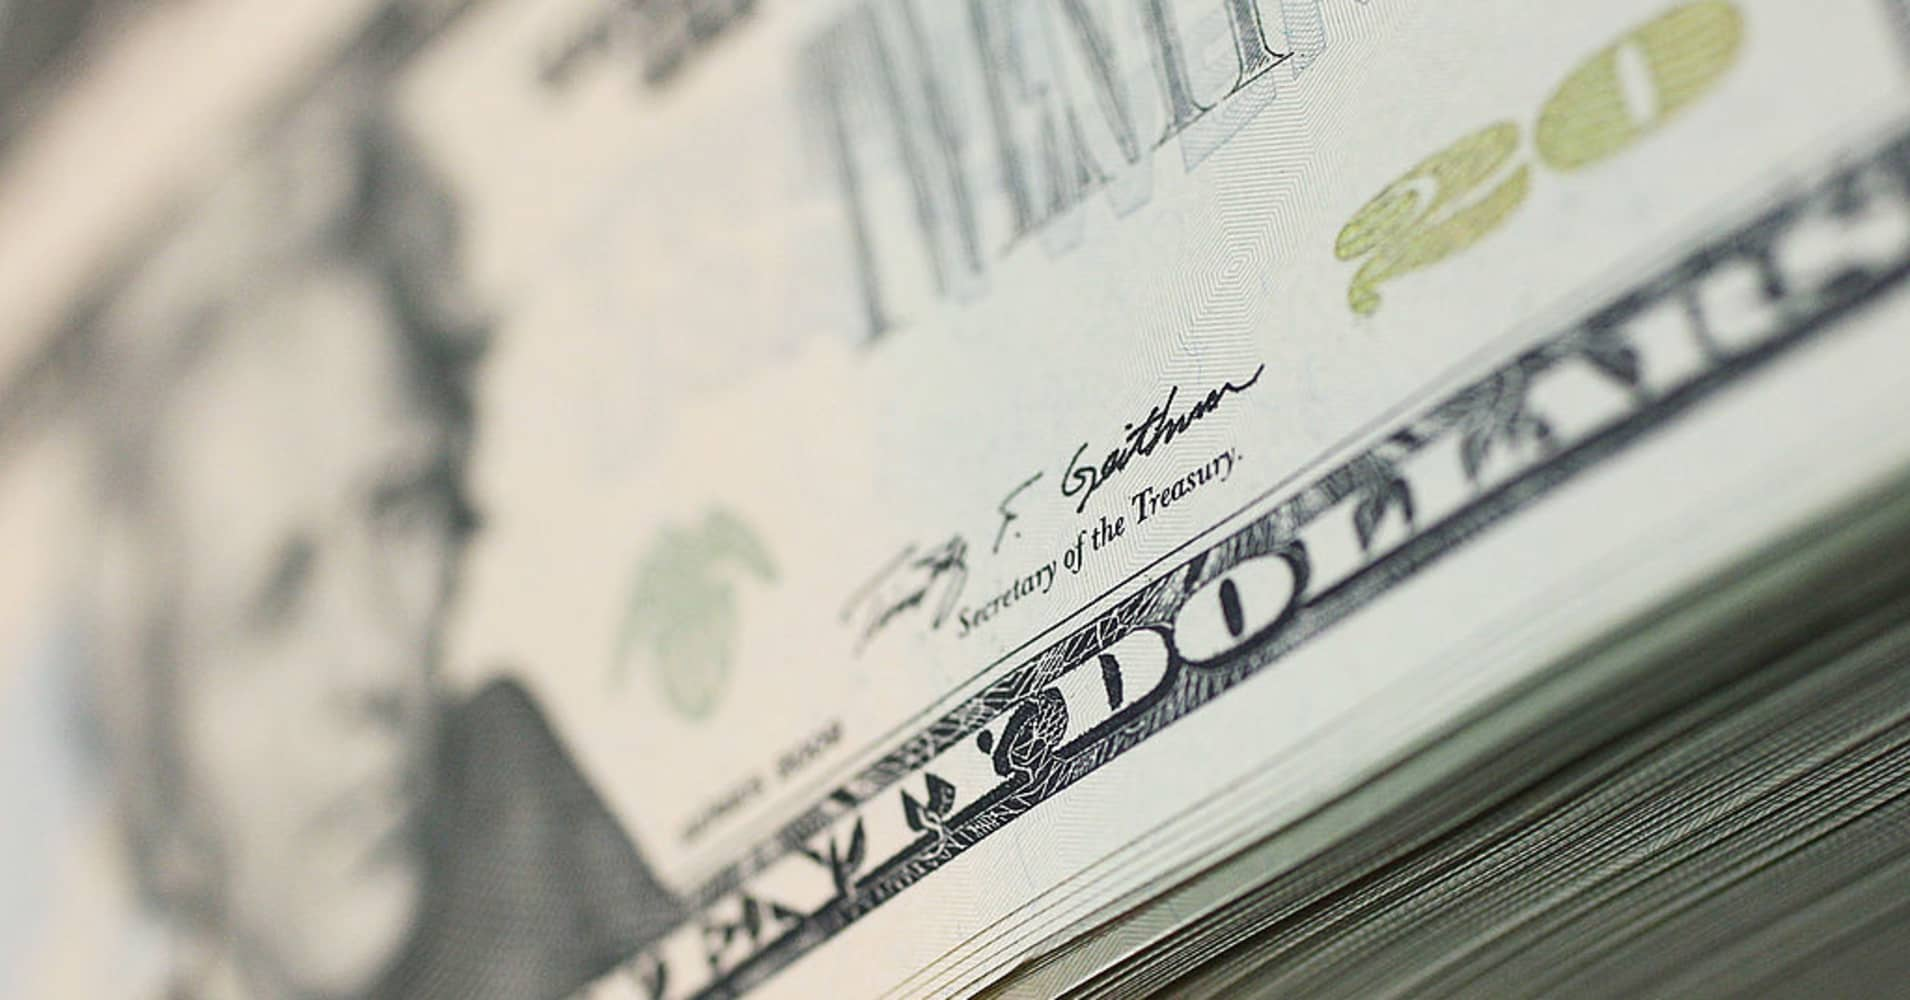 Dollar slips on Fed chief's 'patient' comments